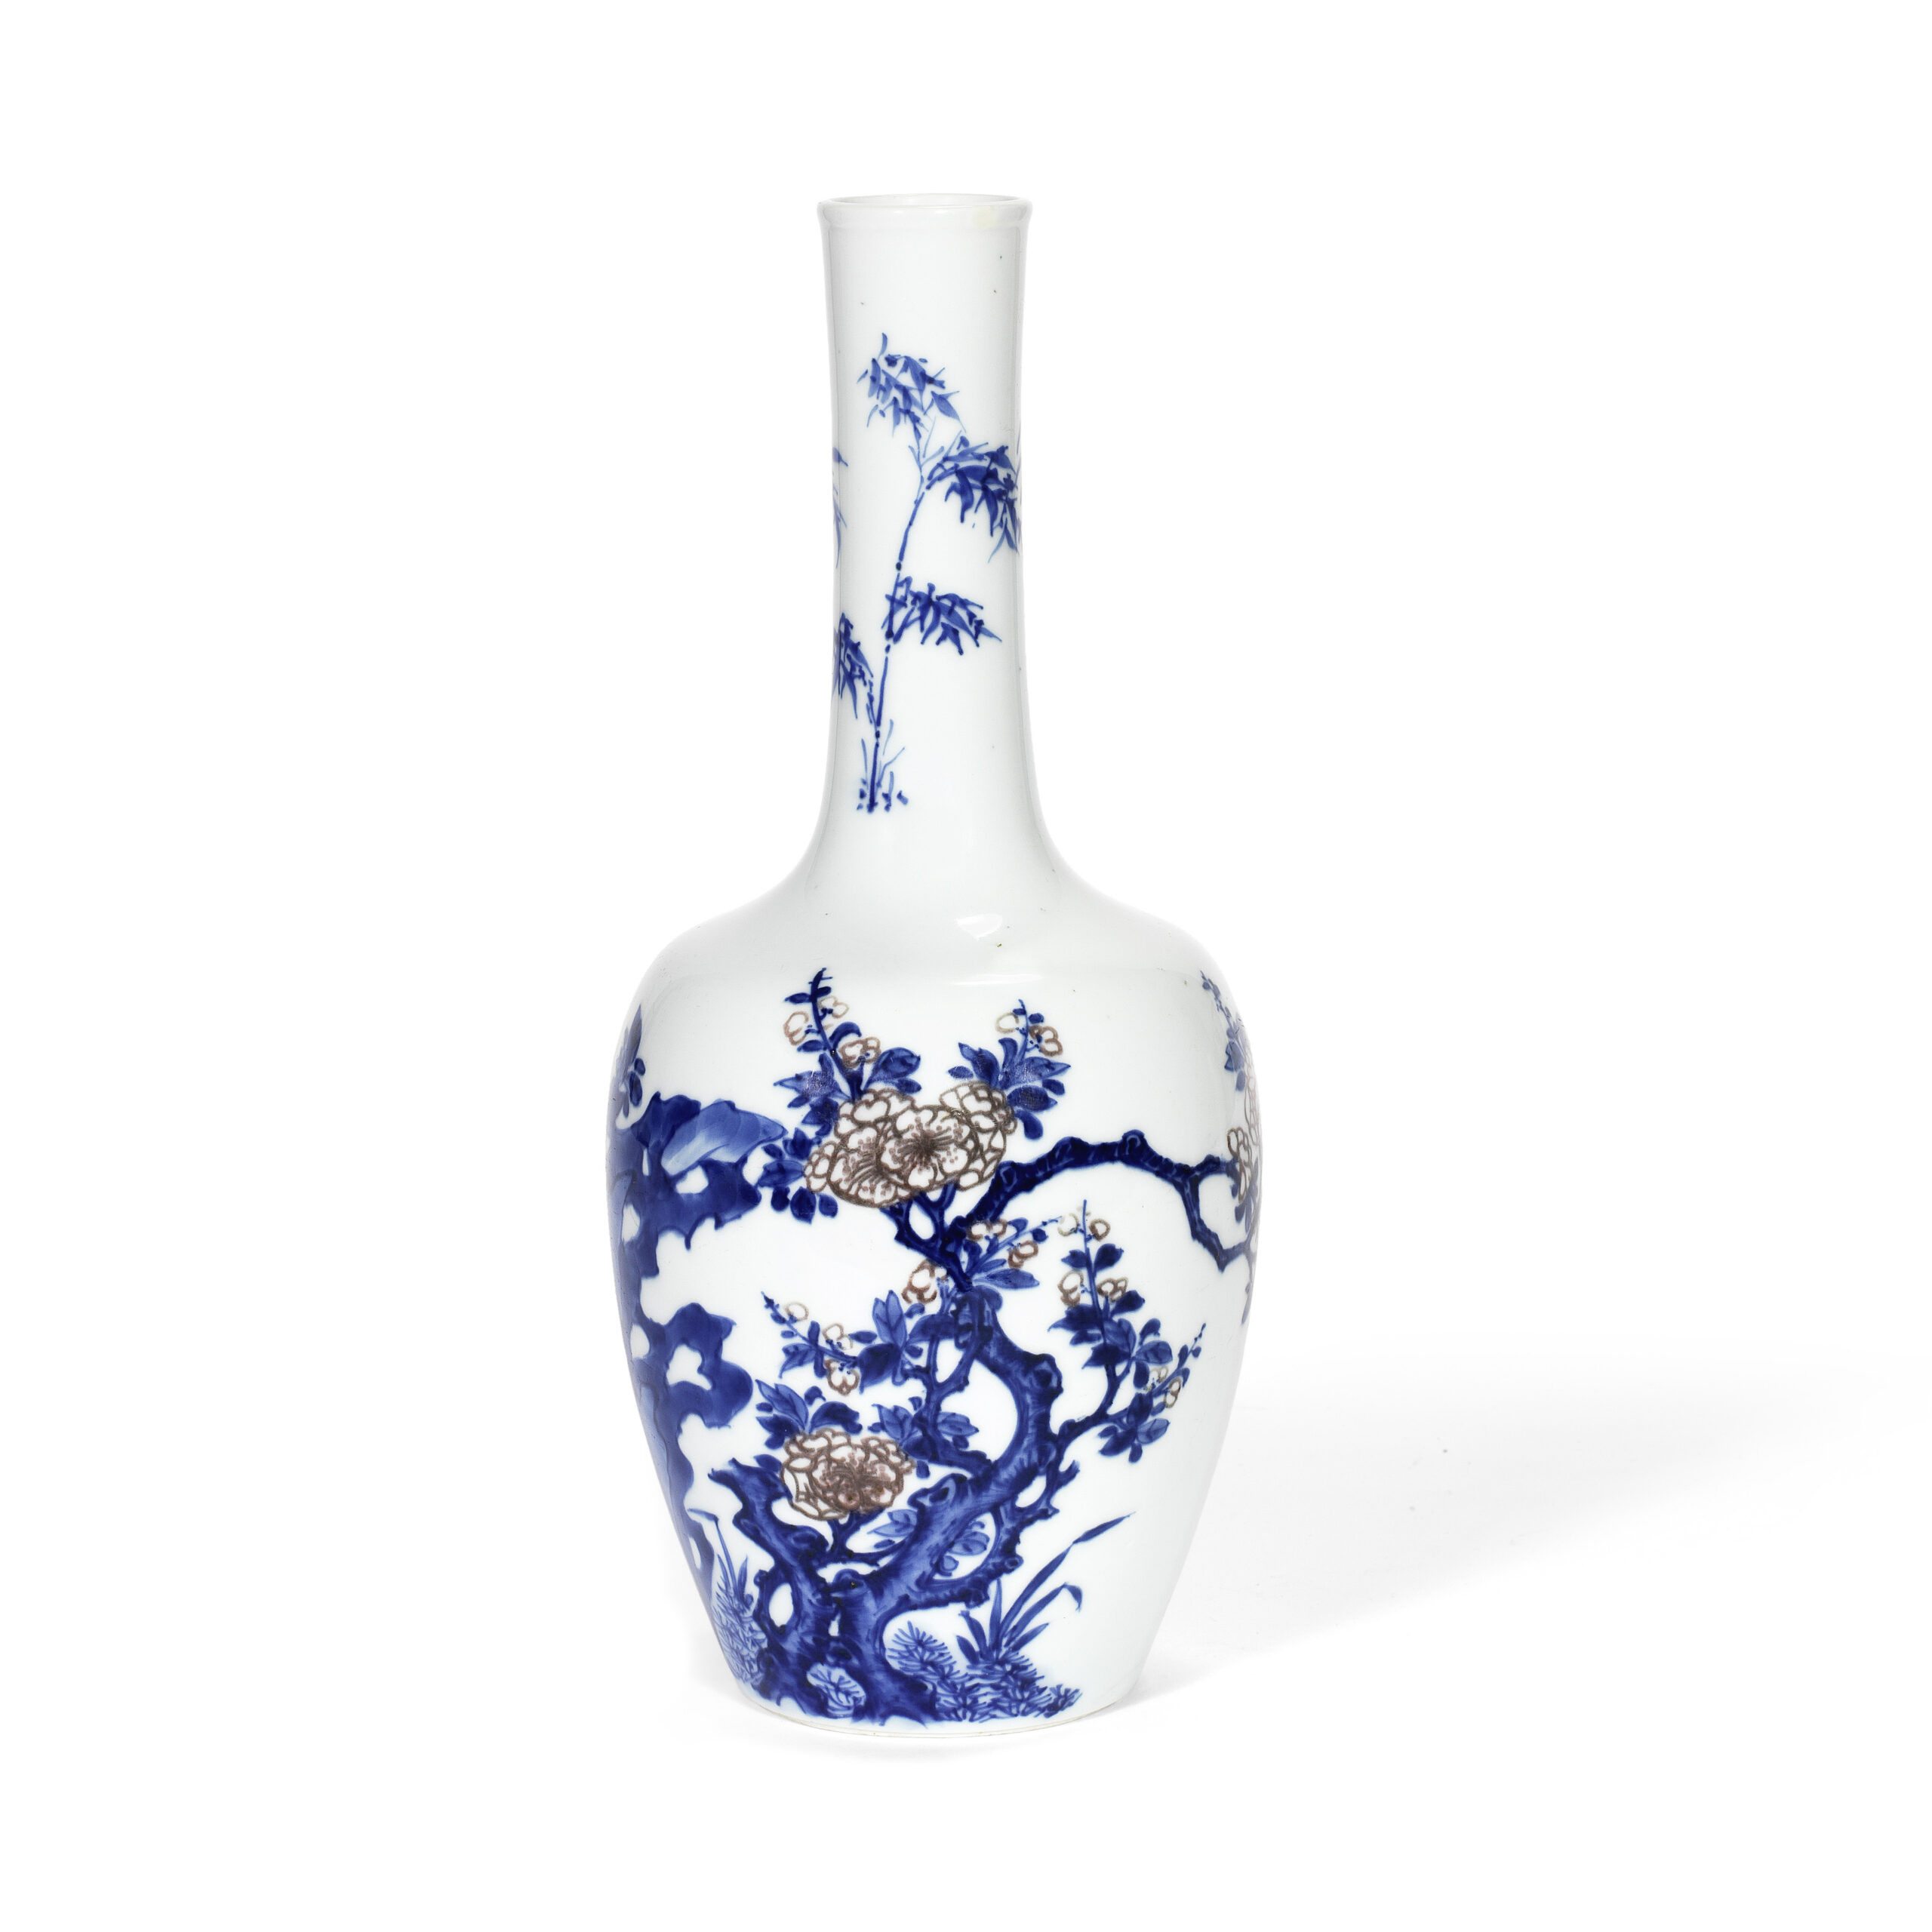 A blue and white and copper red decorated bottle vase, Chenghua six-character mark, Kangxi